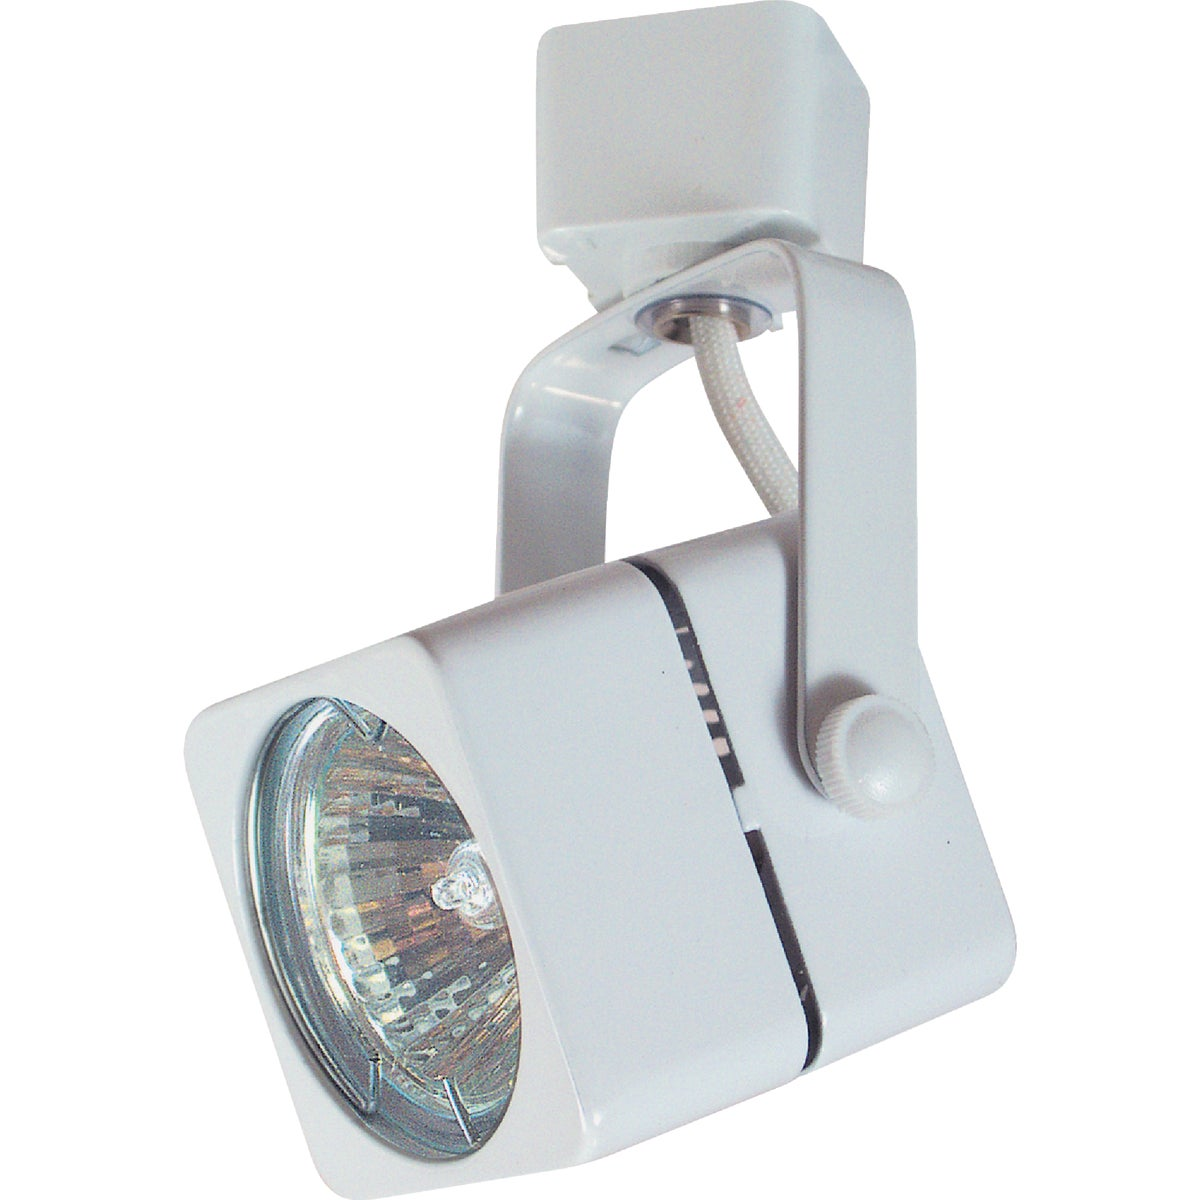 WHT APOLLO TRACK FIXTURE - AO1012-WH-120V by Liteline Corporation